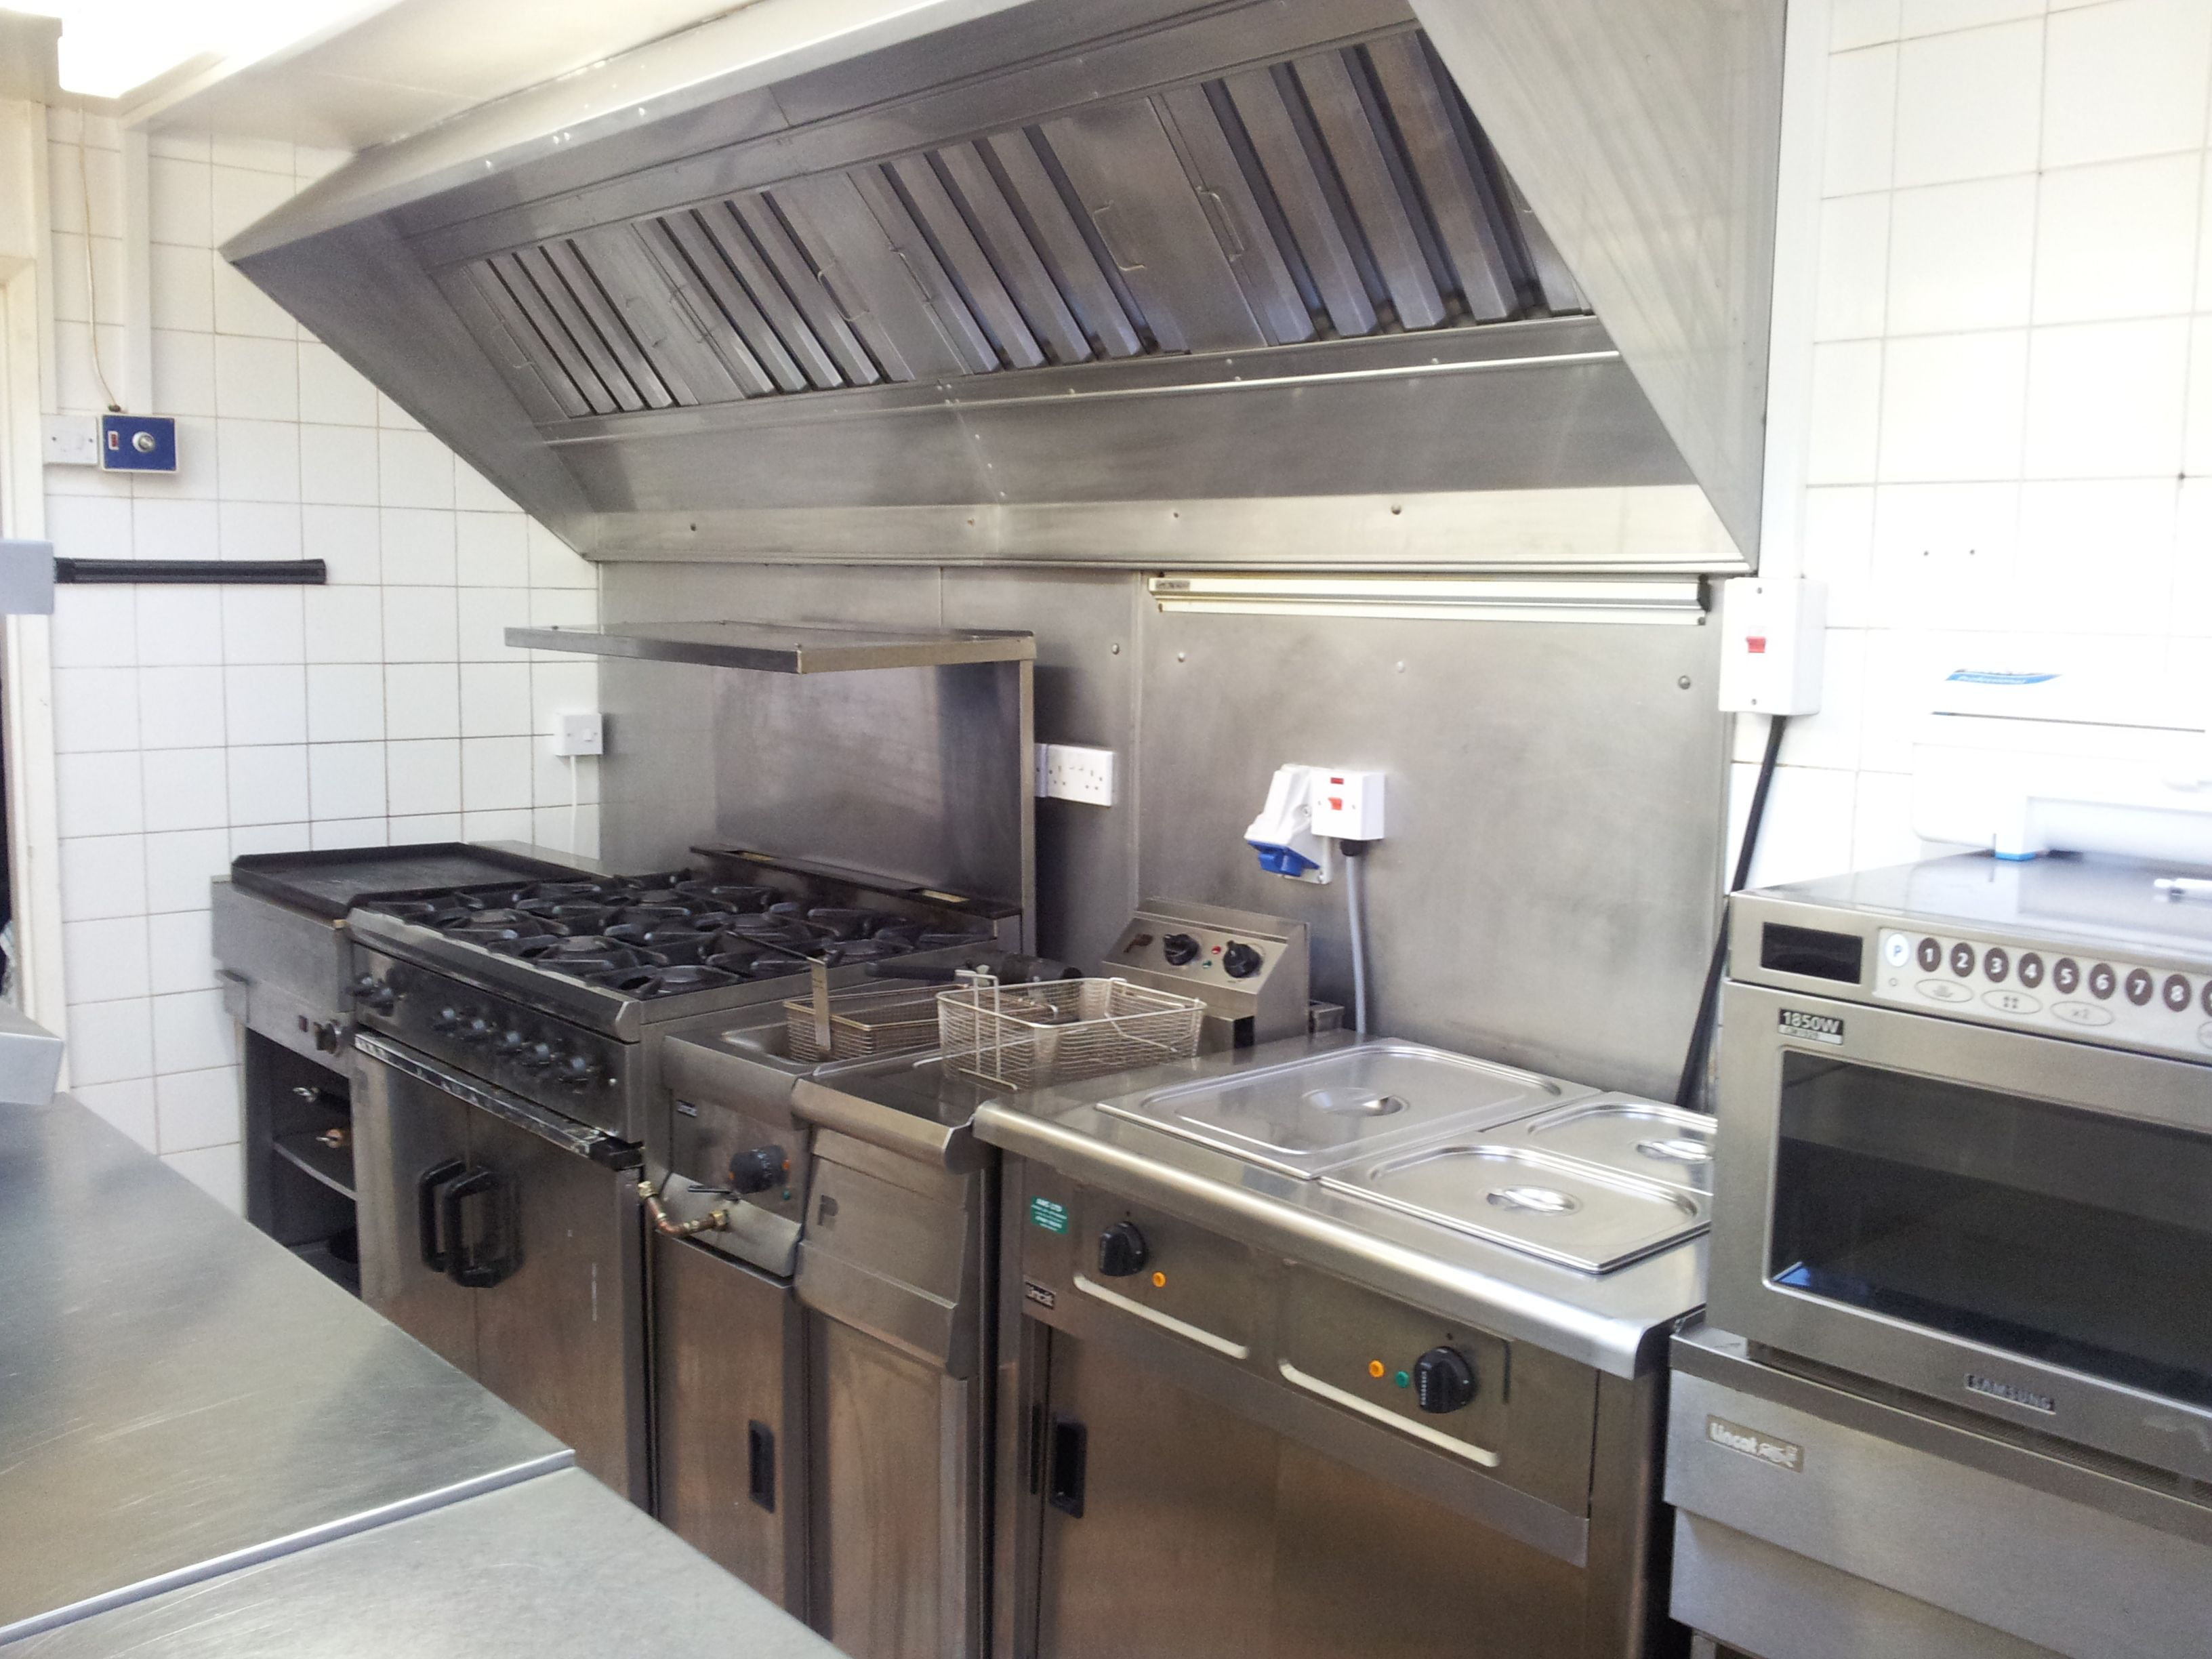 Restaurant Kitchen Design Images beautiful commercial kitchen, the stainless steel appliances and